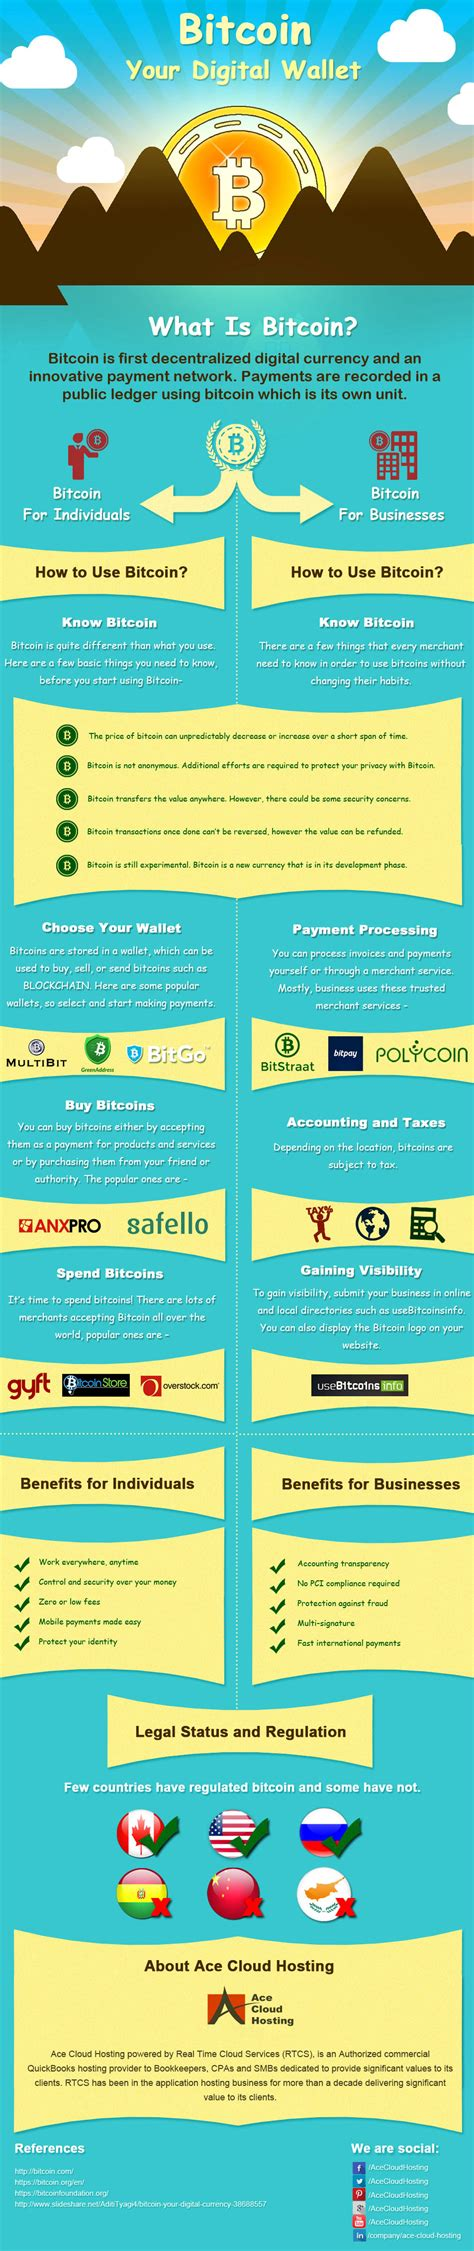 bitcoin cloud wallet getting started with bitcoin your digital wallet